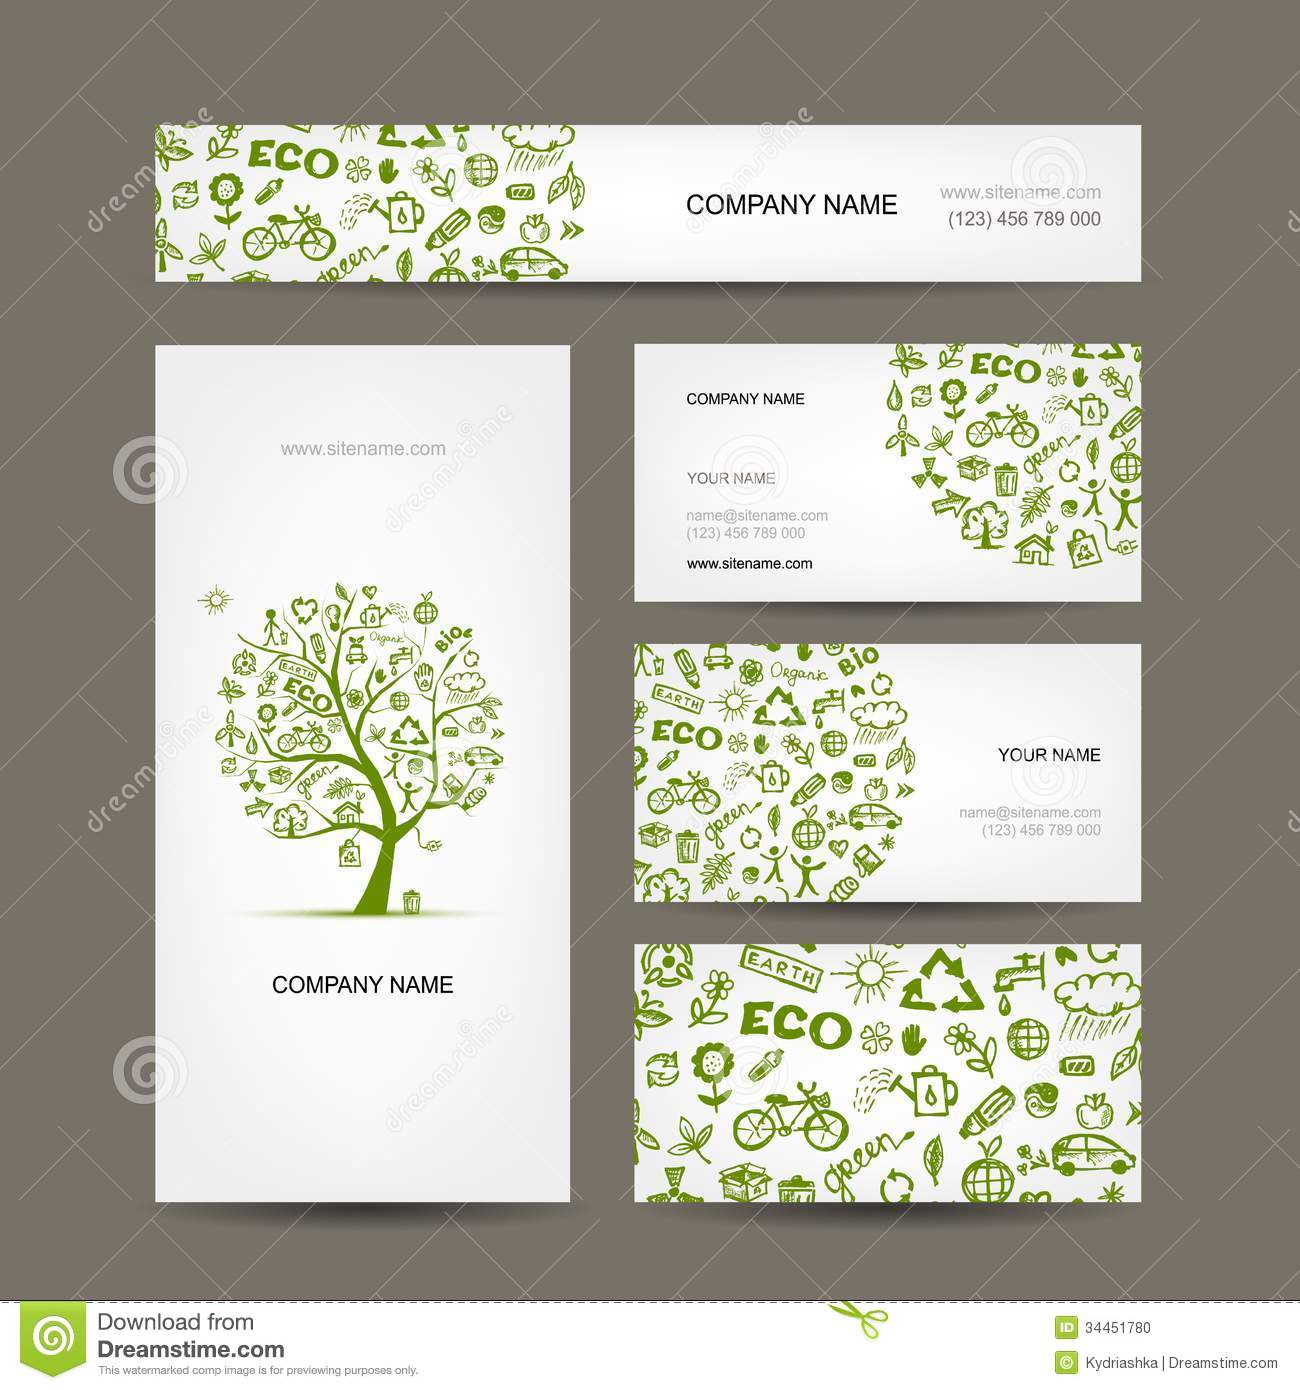 Business cards design green ecology concept stock vector business cards design green ecology concept reheart